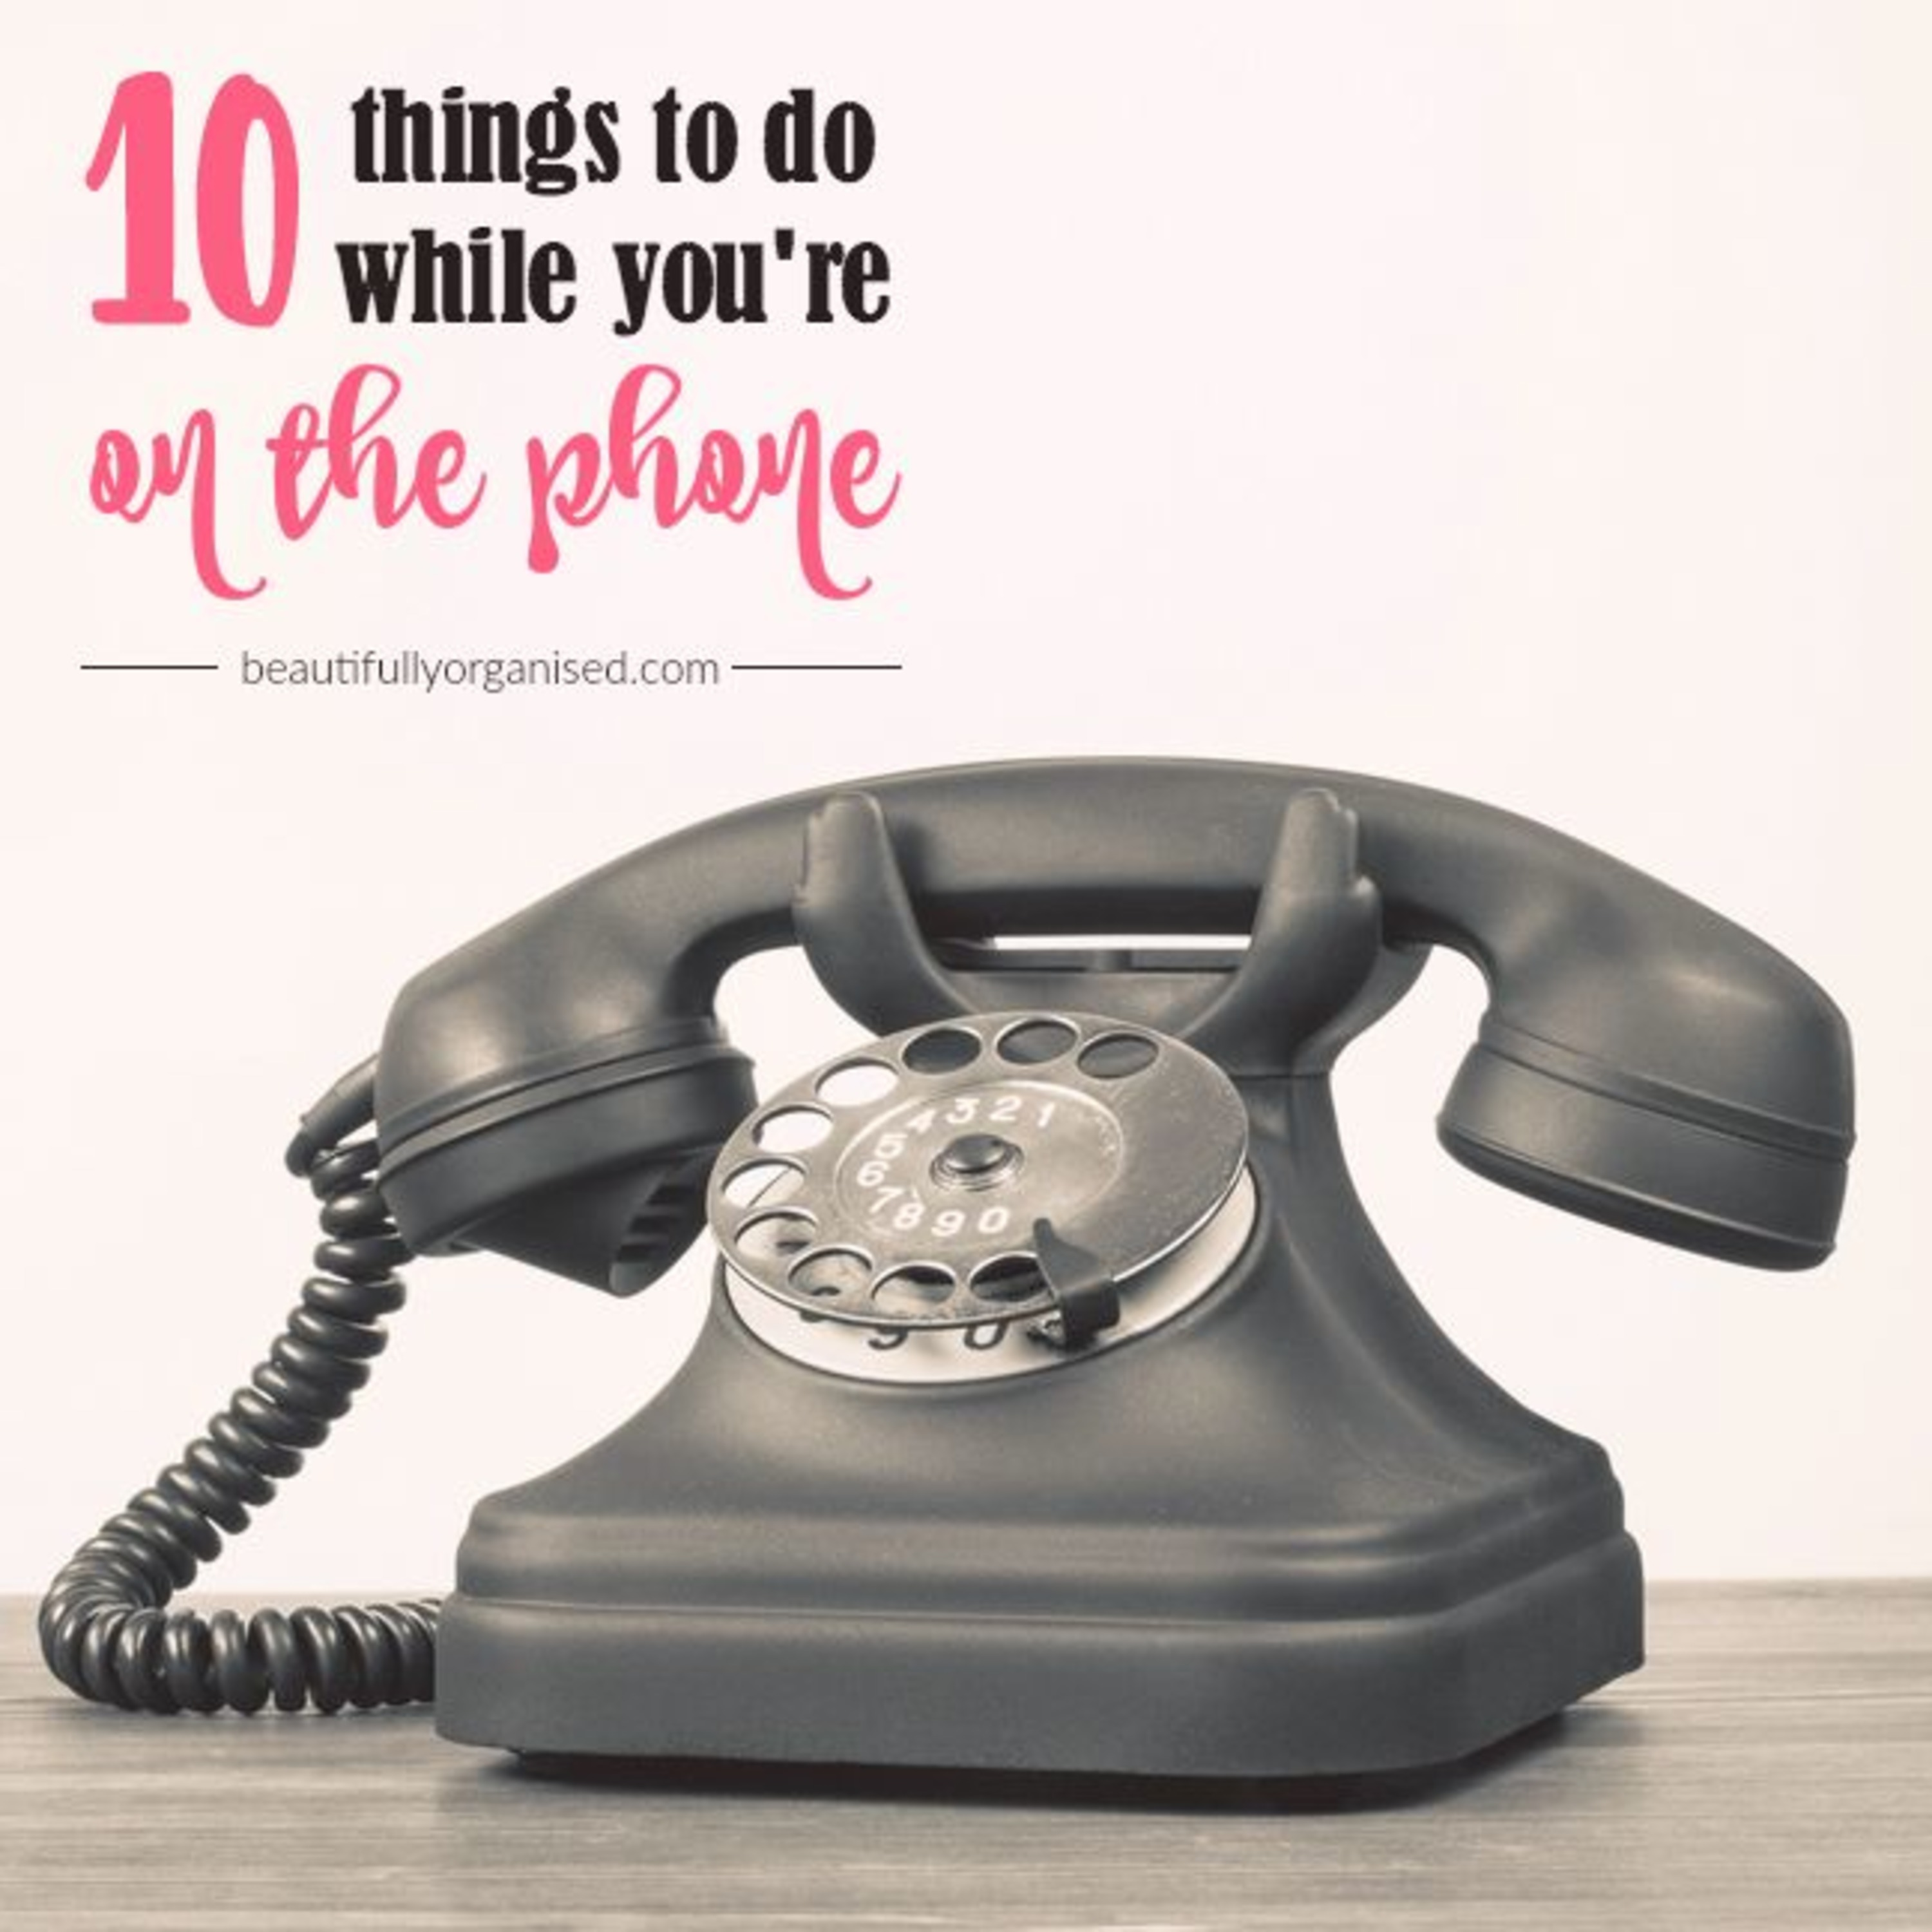 10 Things You Can Do While You're On The Phone